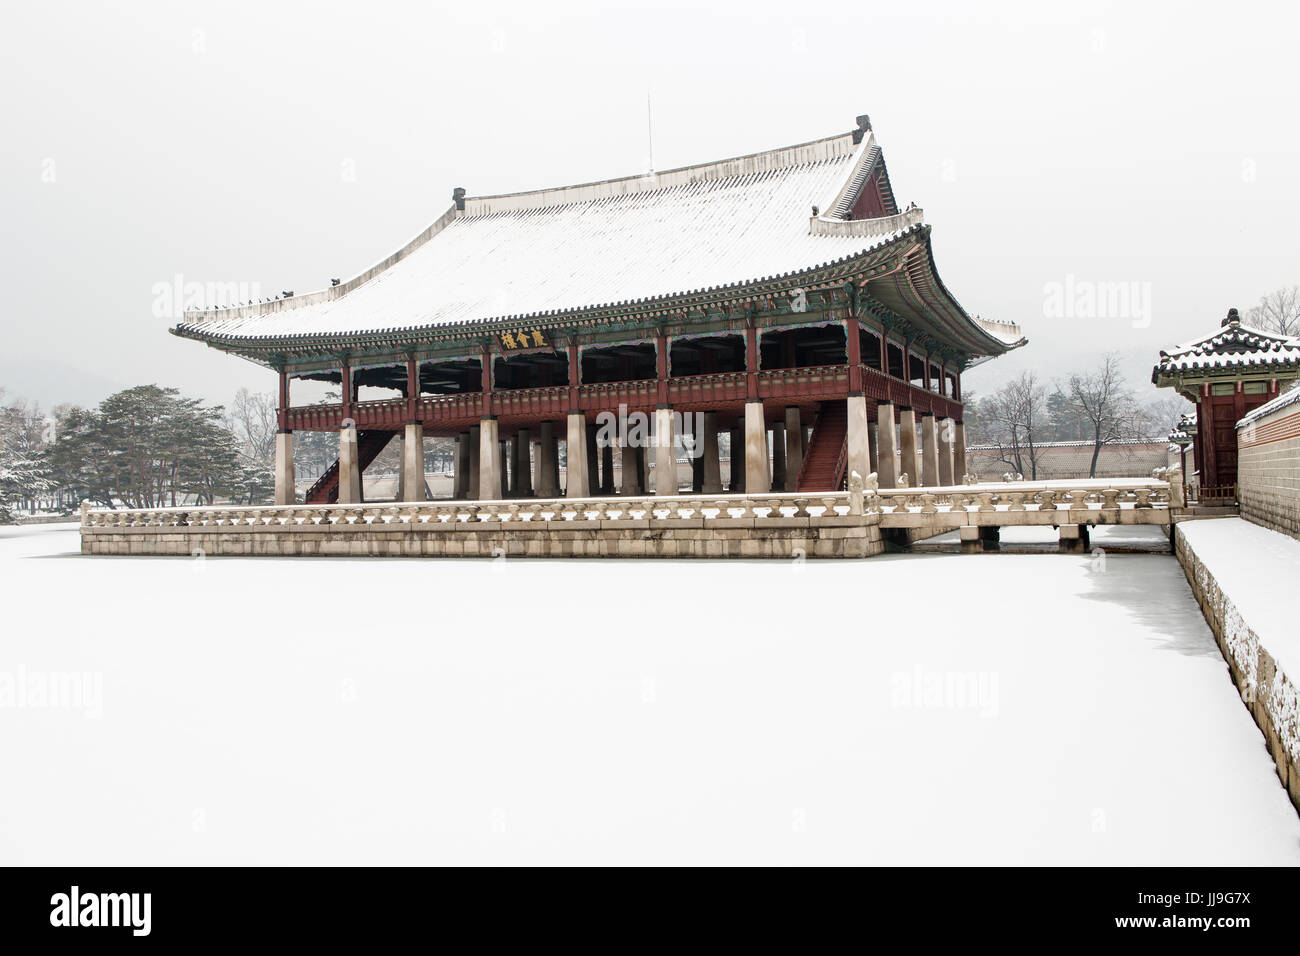 must see beautiful gyeongbok palace in soul, south korea - in winter - Stock Image